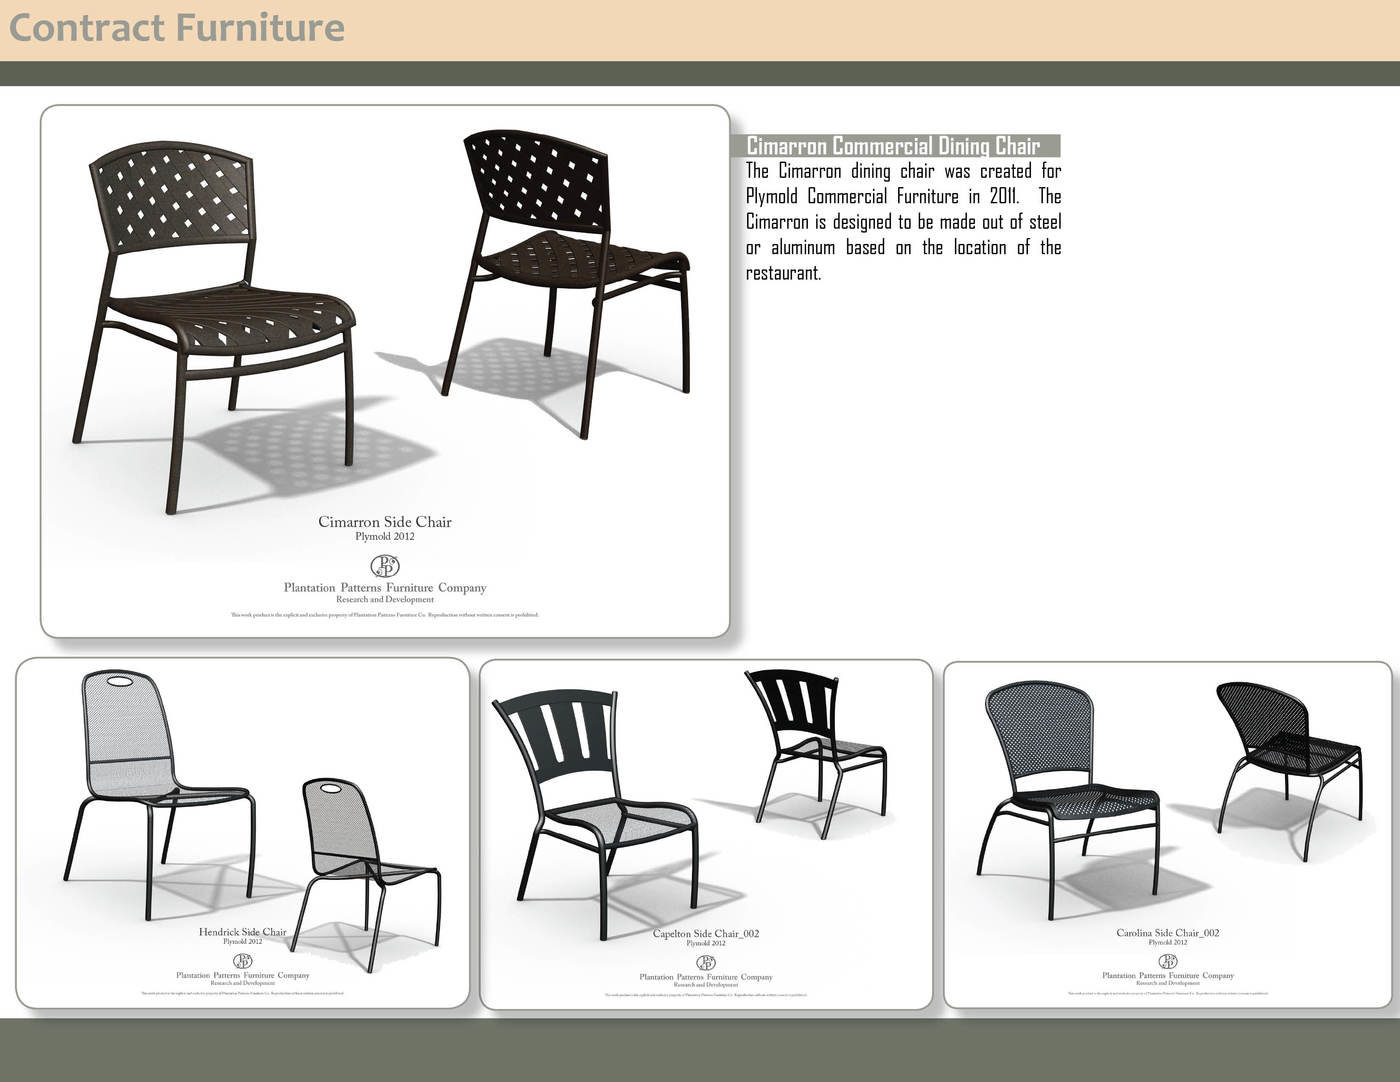 Contract Patio Furniture   Solidworks Renderings Of Contract Patio Chairs  Developed For Plymold In 2011.